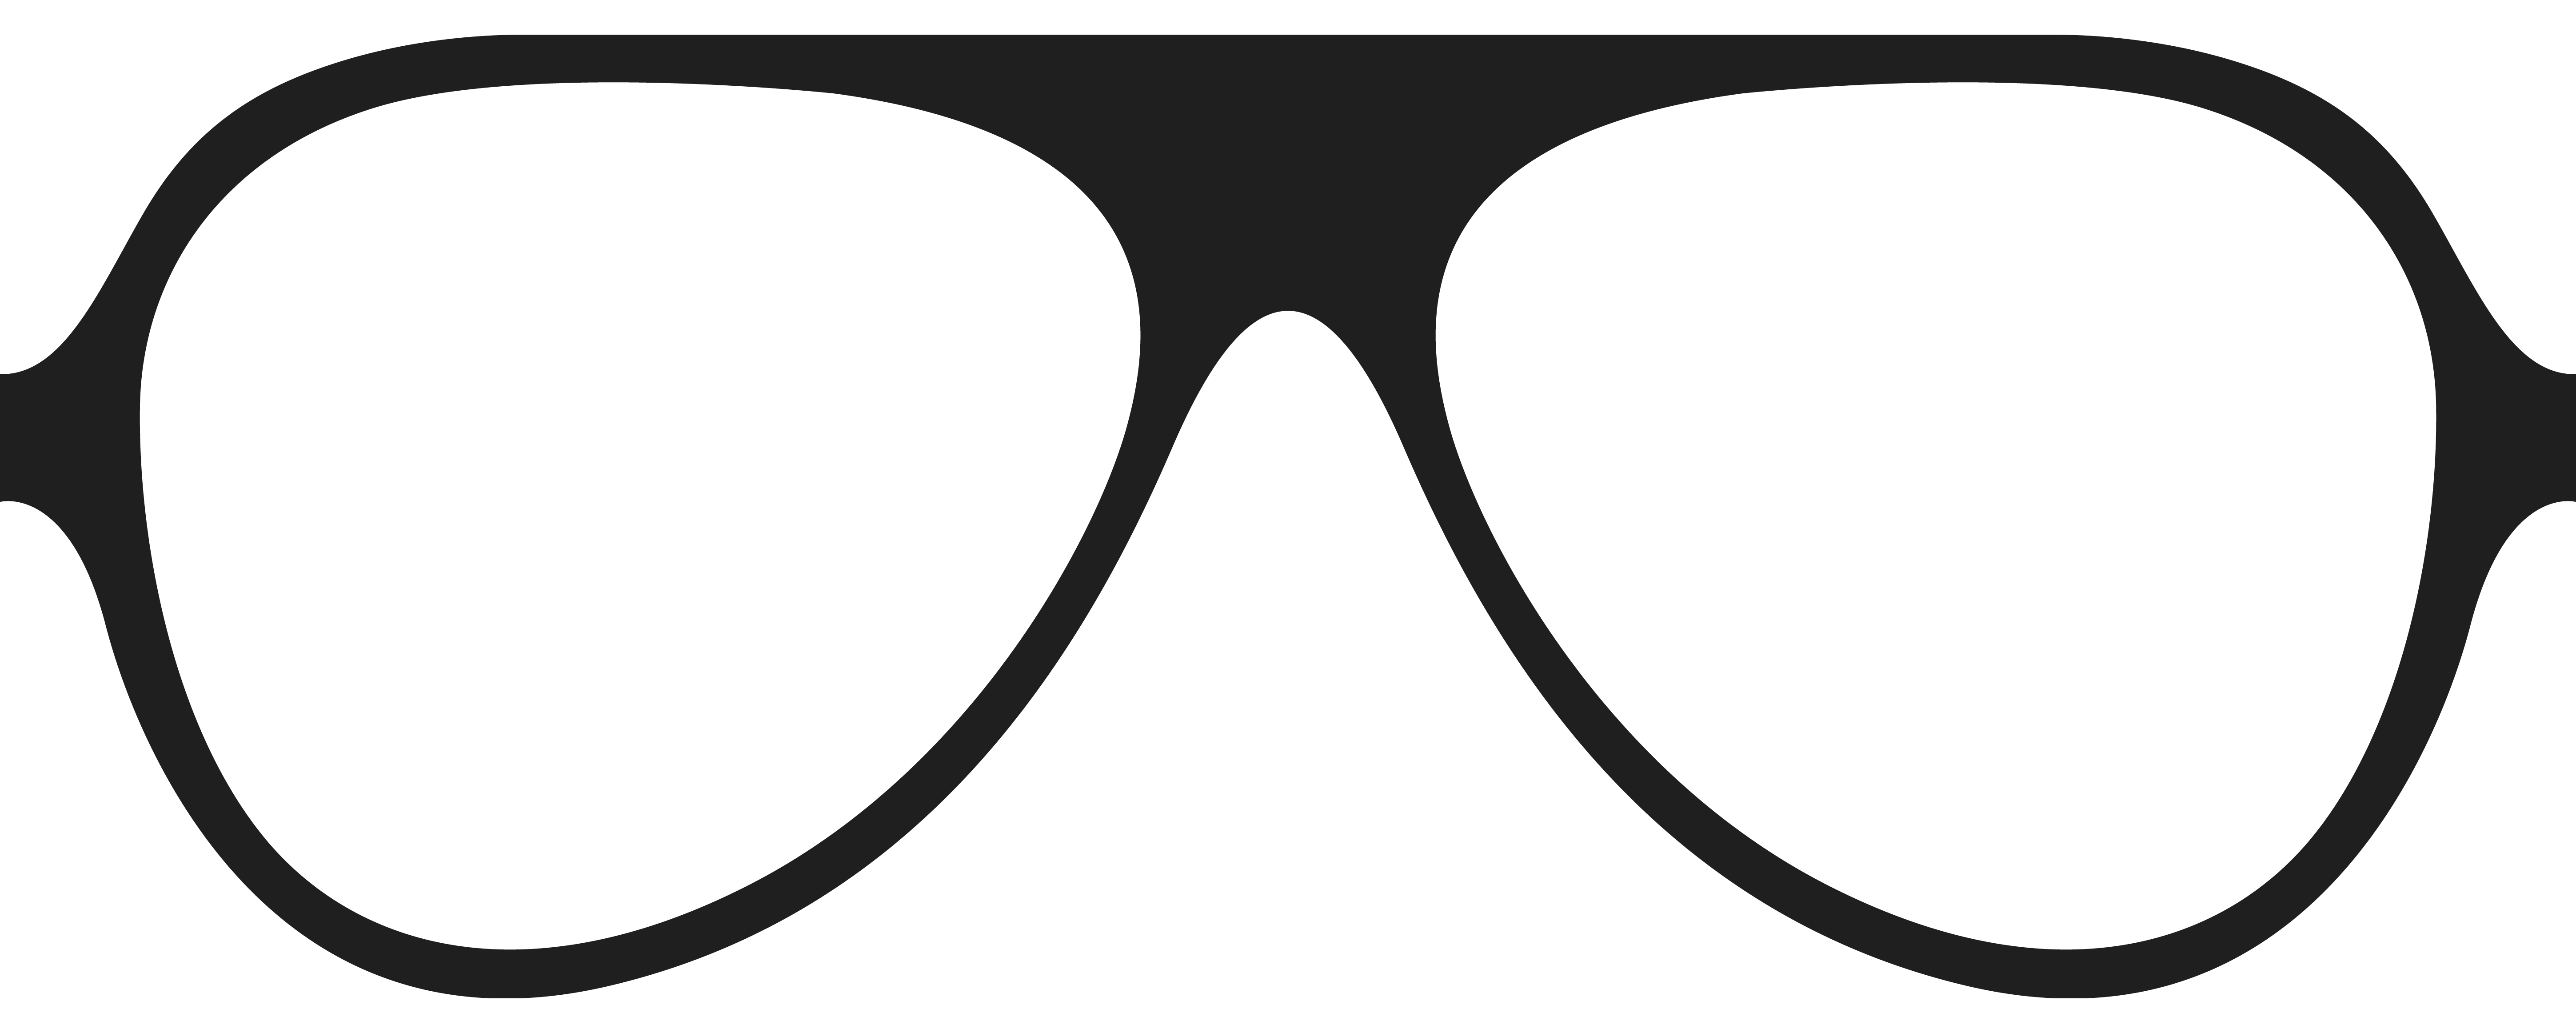 Glasses frame png. Movember clipart picture gallery